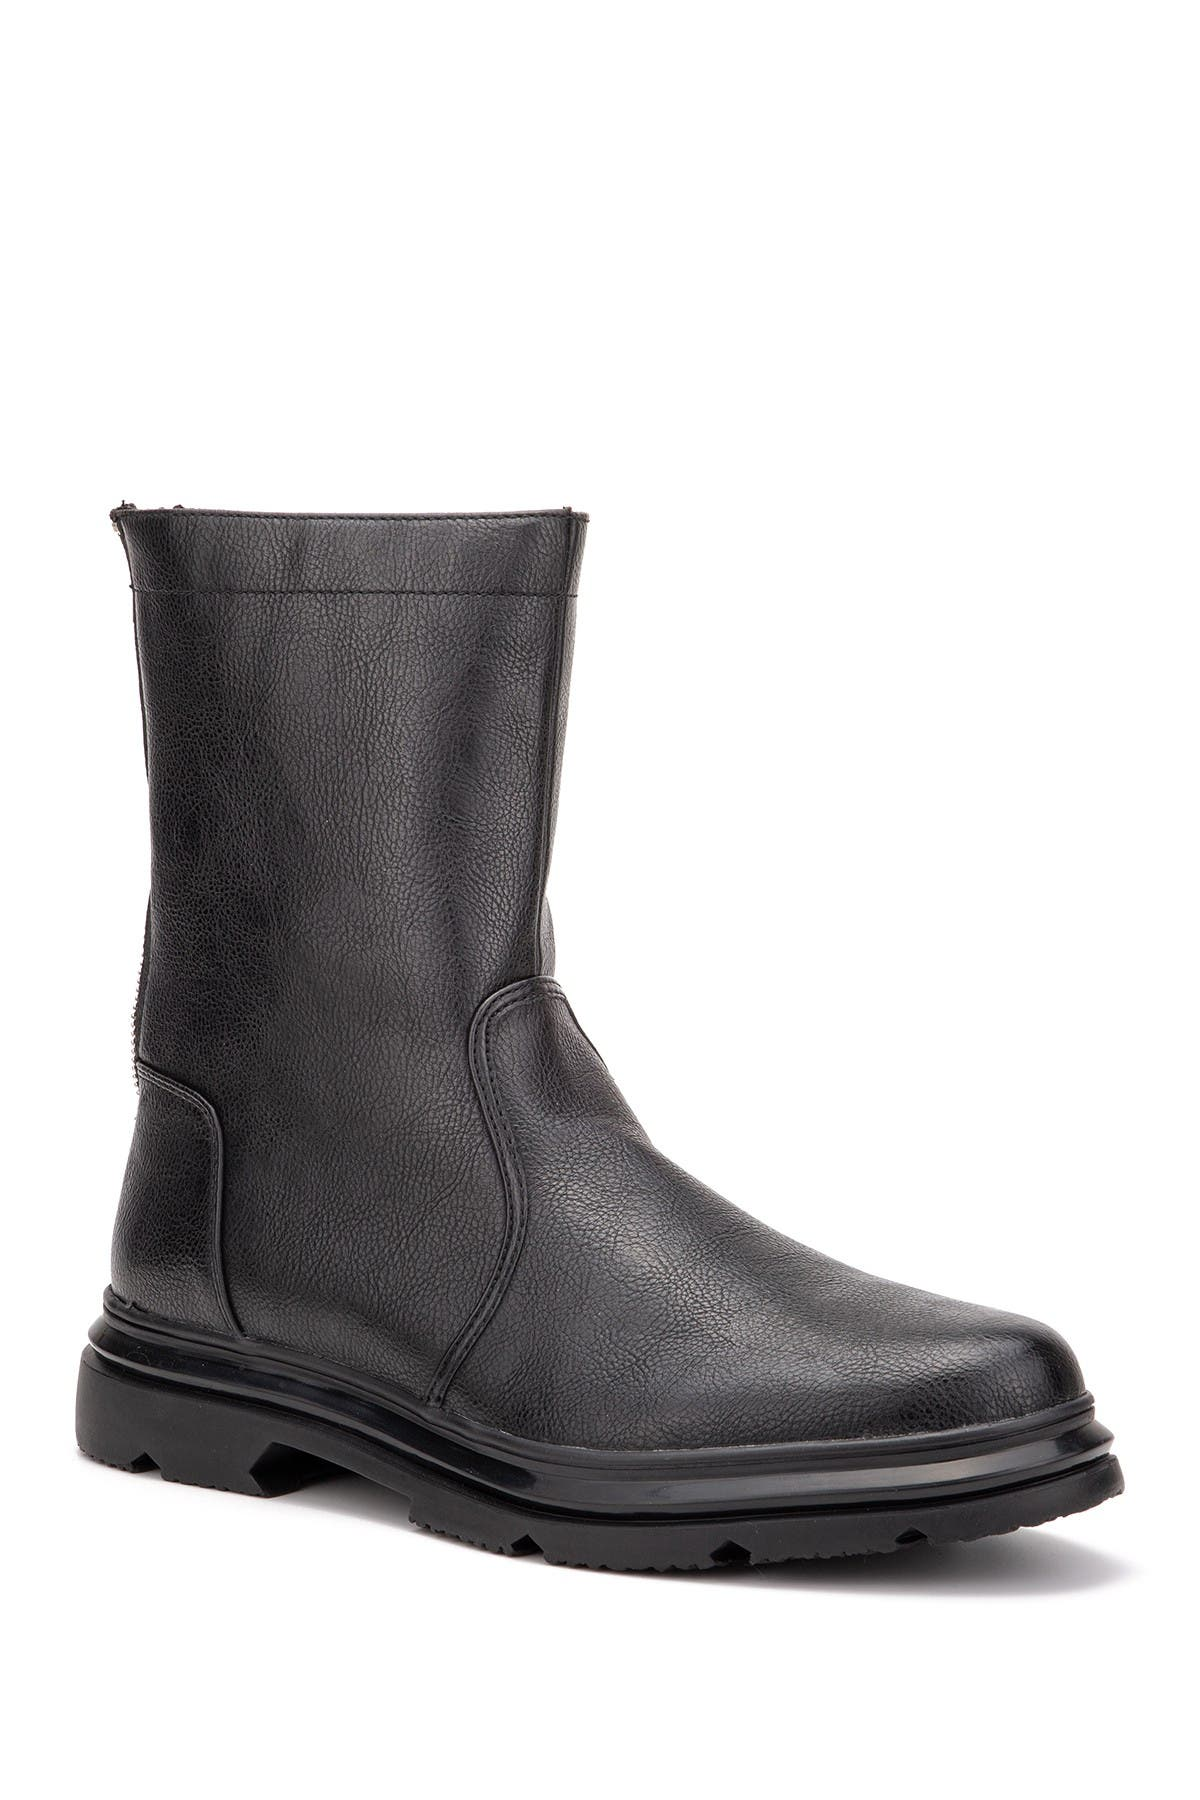 Image of Vintage Foundry Zip-Up Boot